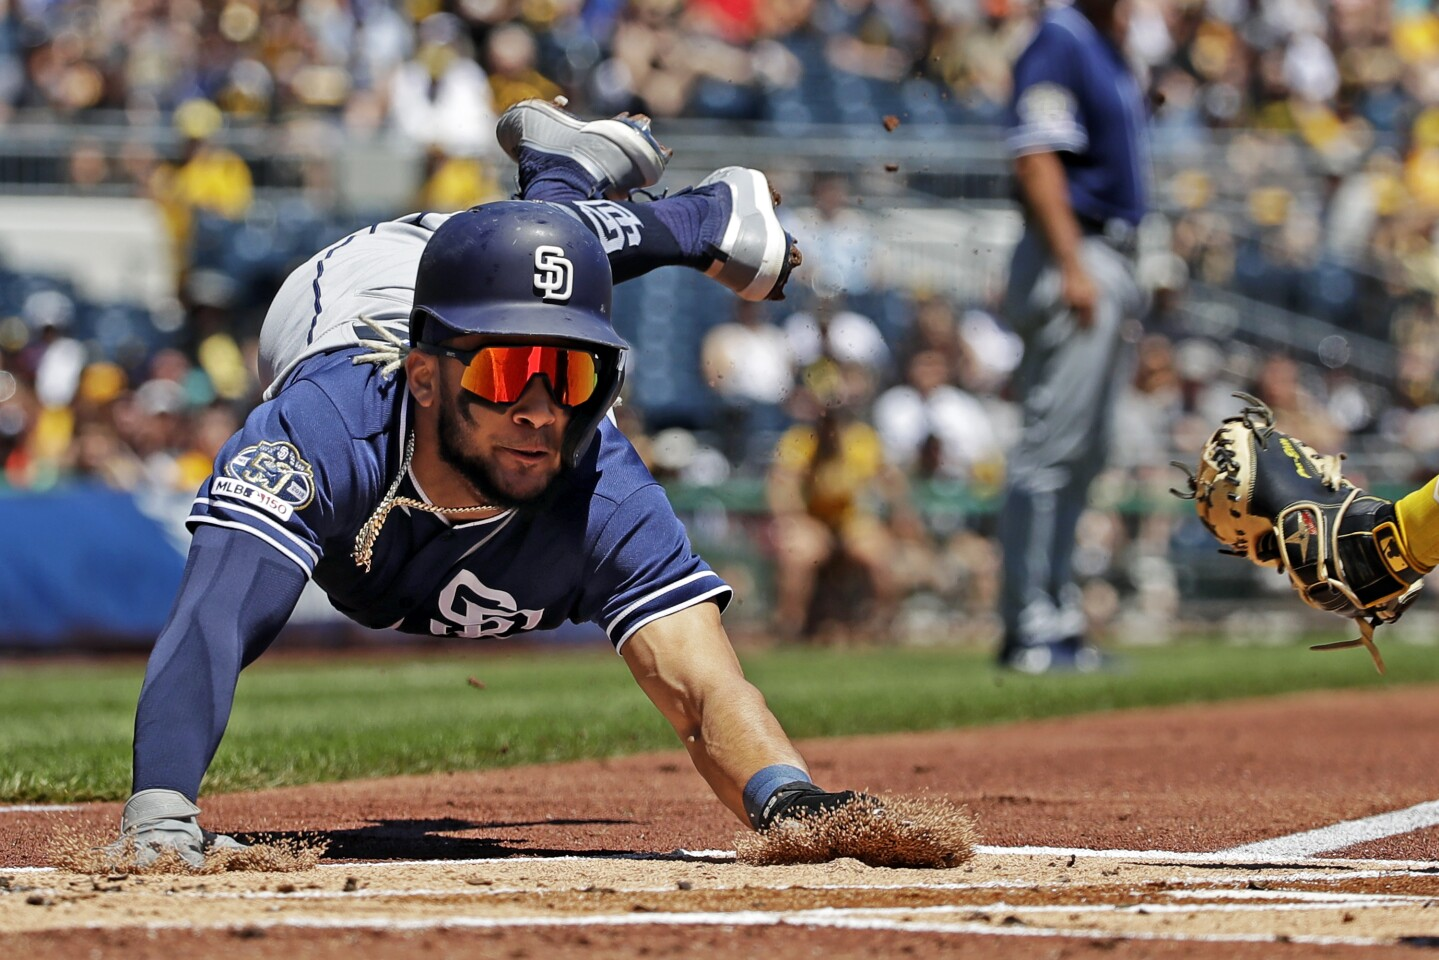 San Diego Padres' Fernando Tatis Jr., left, slides around the tag attempted by Pittsburgh Pirates catcher Elias Diaz, right rear, during the first inning of a baseball game in Pittsburgh, Sunday, June 23, 2019. Tatis tagged up at third on a sacrifice fly to second by Hunter Renfroe. (AP Photo/Gene J. Puskar)